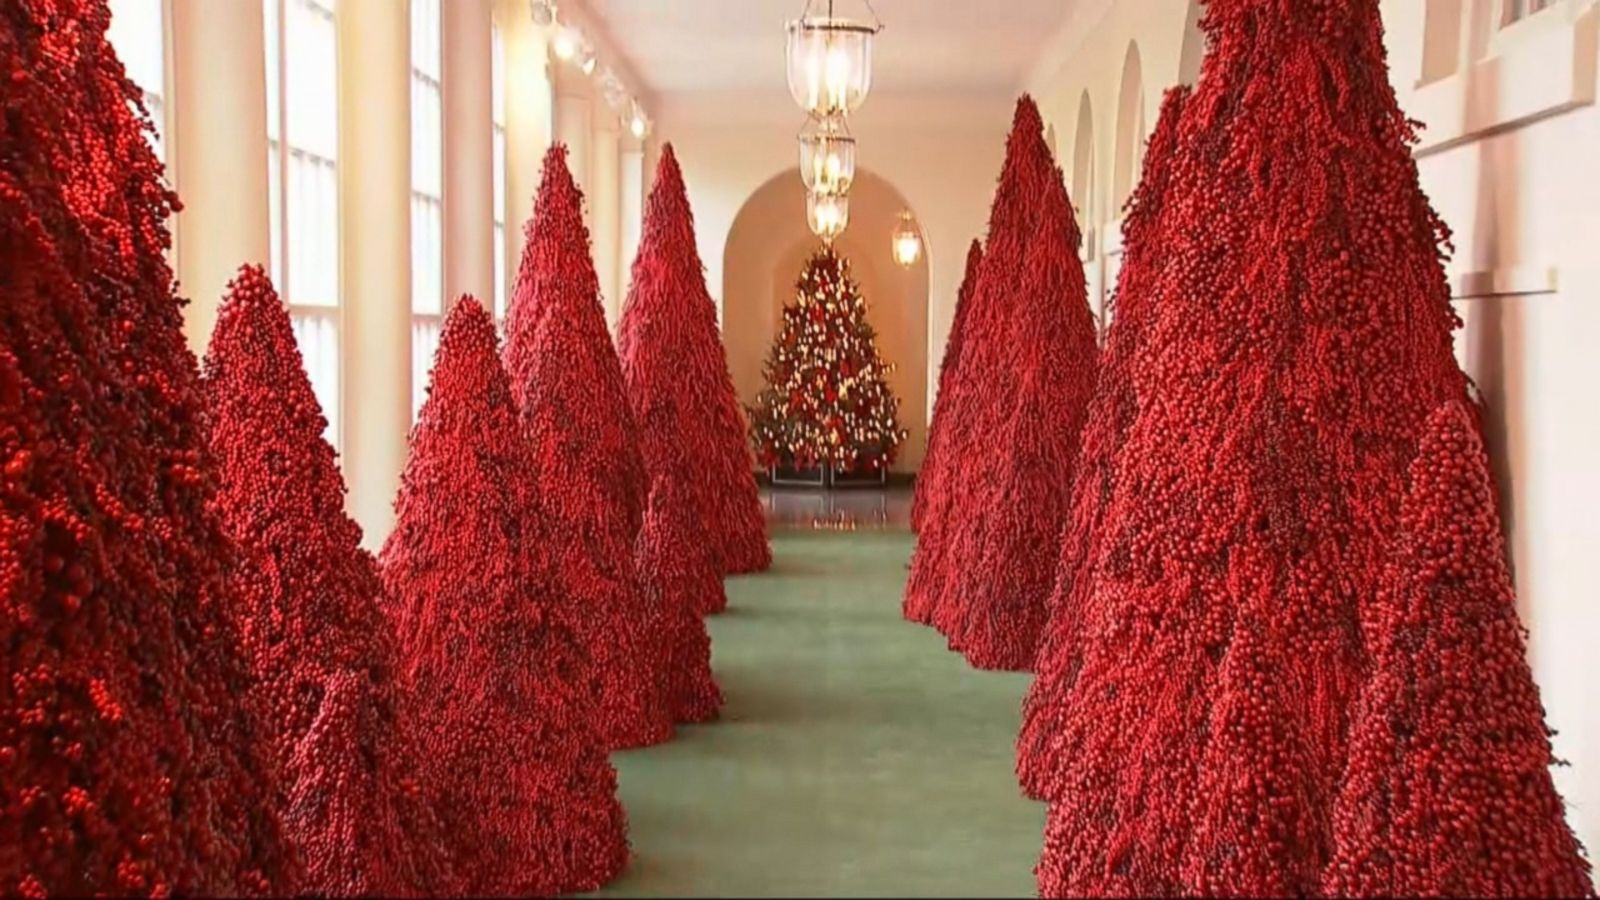 after the handmaids tale references melania trump defends her red christmas trees abc news